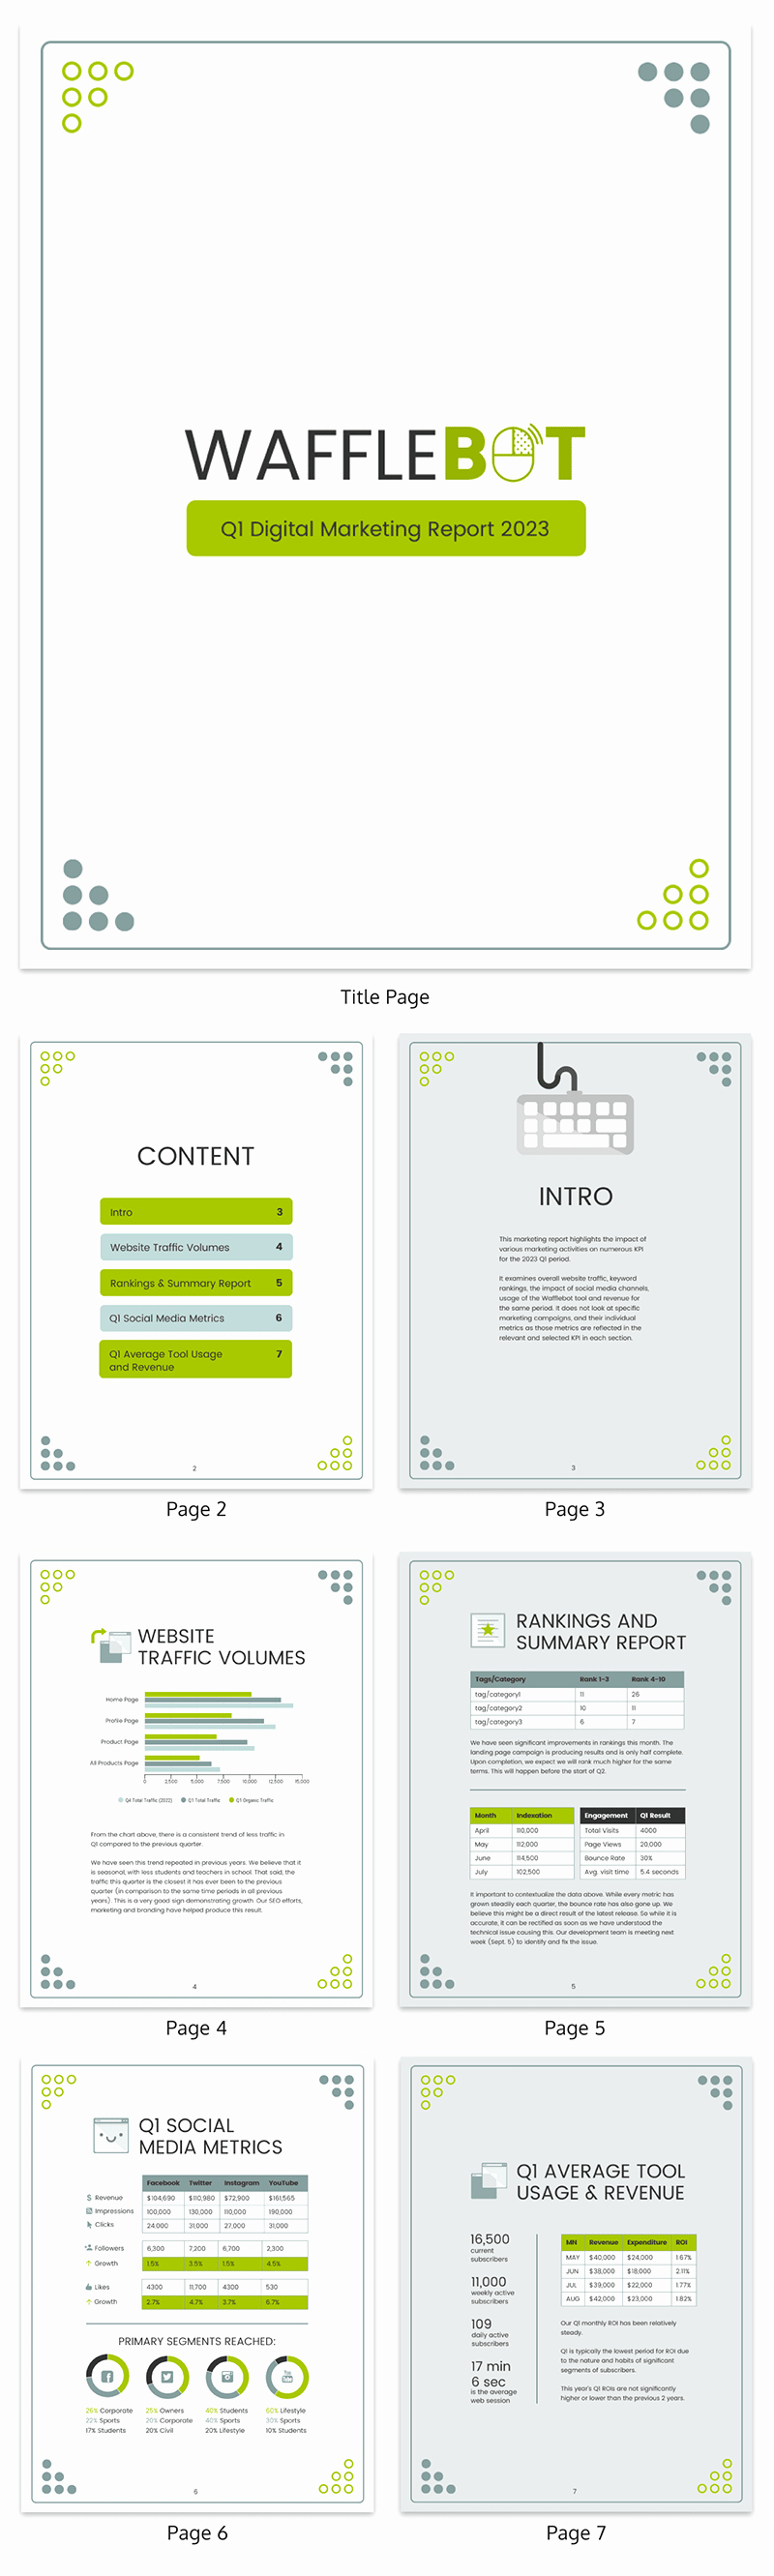 Business Report format Template Awesome 30 Business Report Templates Every Business Needs Venngage